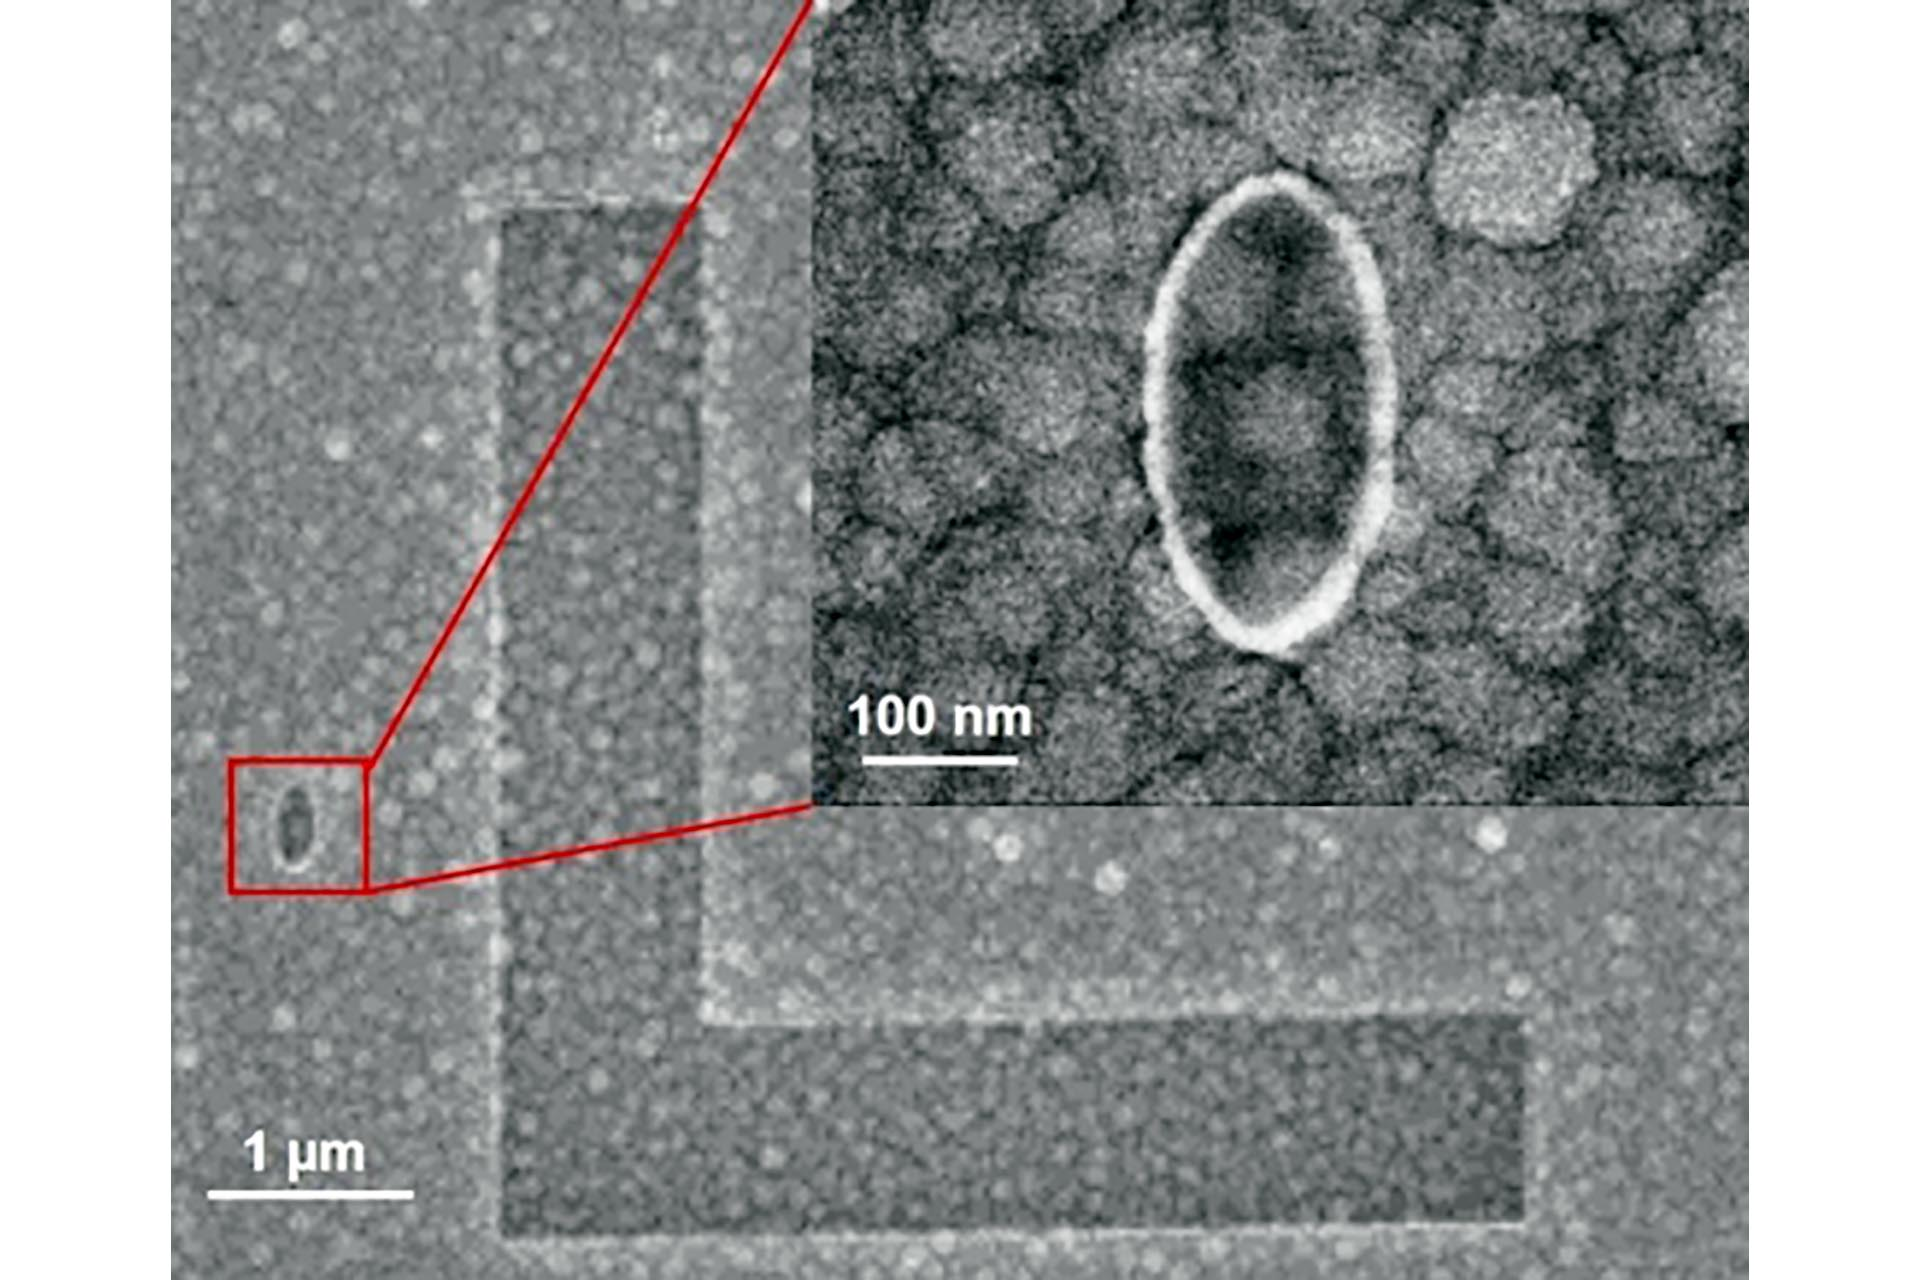 An ultra-high resolution lift-off process was applied after NanoFrazor lithography in PPA to deposit well defined ellipses made of SiO2 on top of a granular magnetic material.